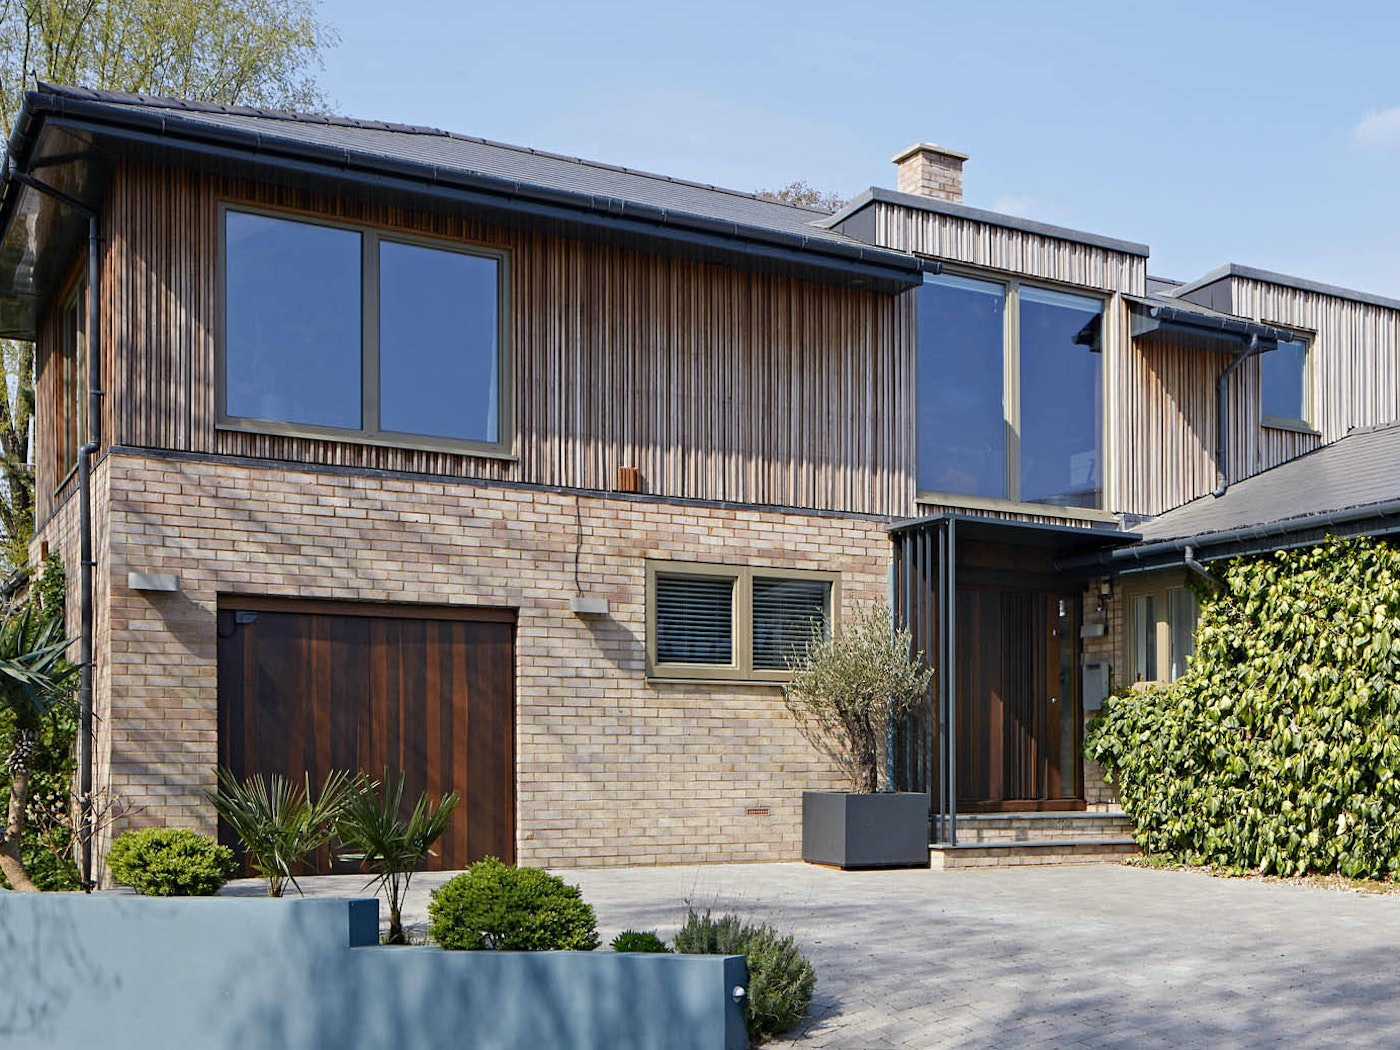 """Complementing the """"Bari"""" on this house is a """"Raw"""" bifold garage door in the same fumed oak wood. Working together flawlessly with the exterior cladding & brickwork"""